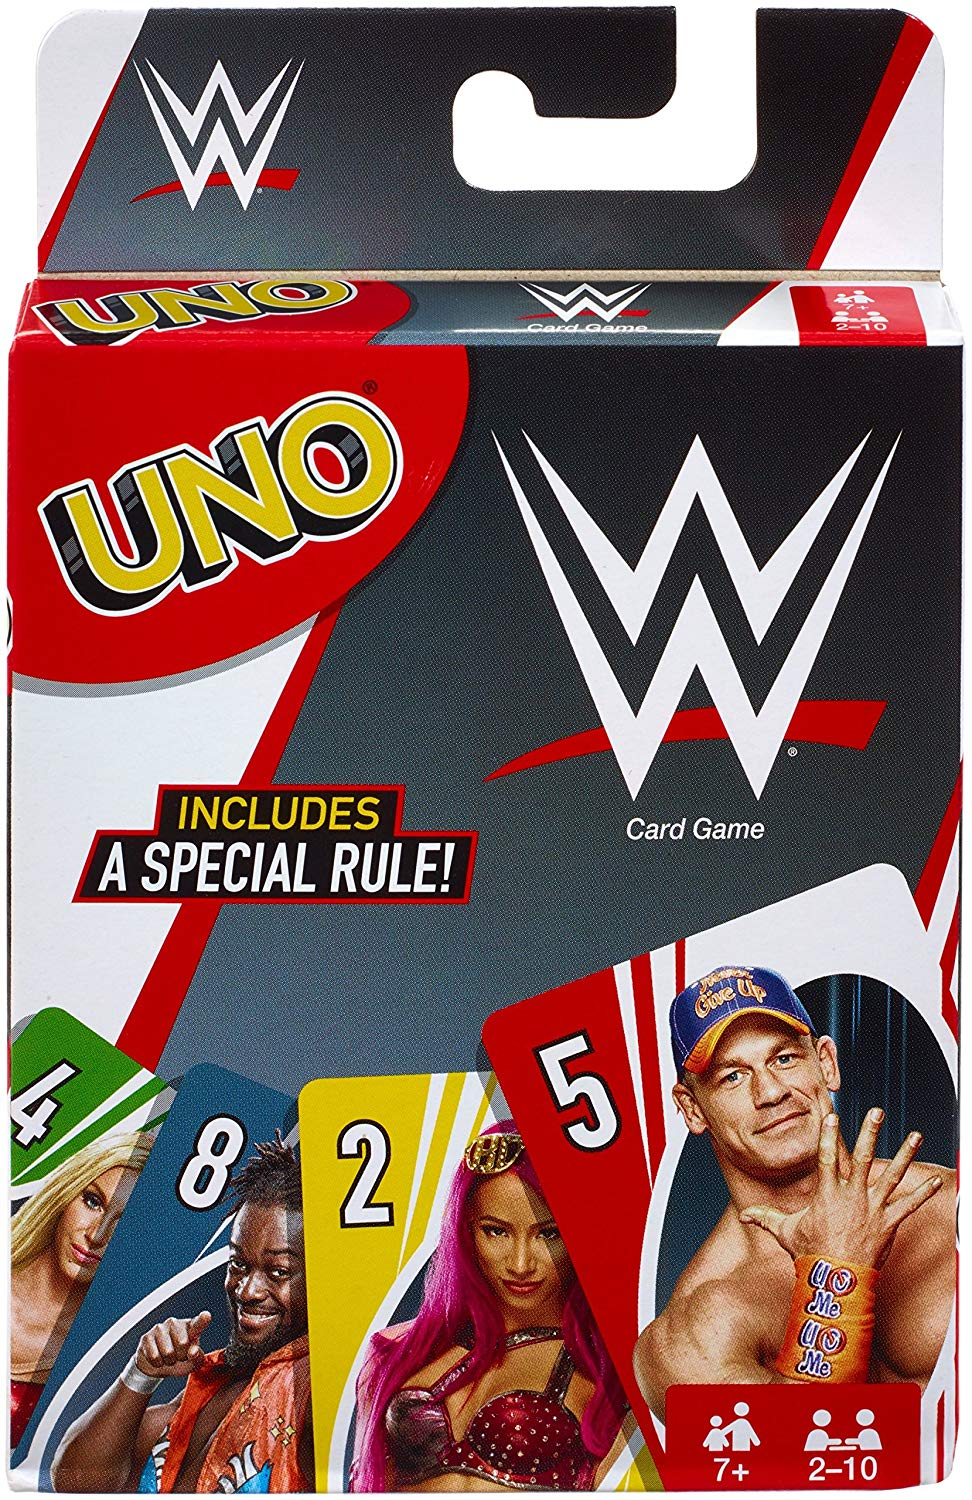 UNO WWE Card Game Only $5.44! - Become a Coupon Queen